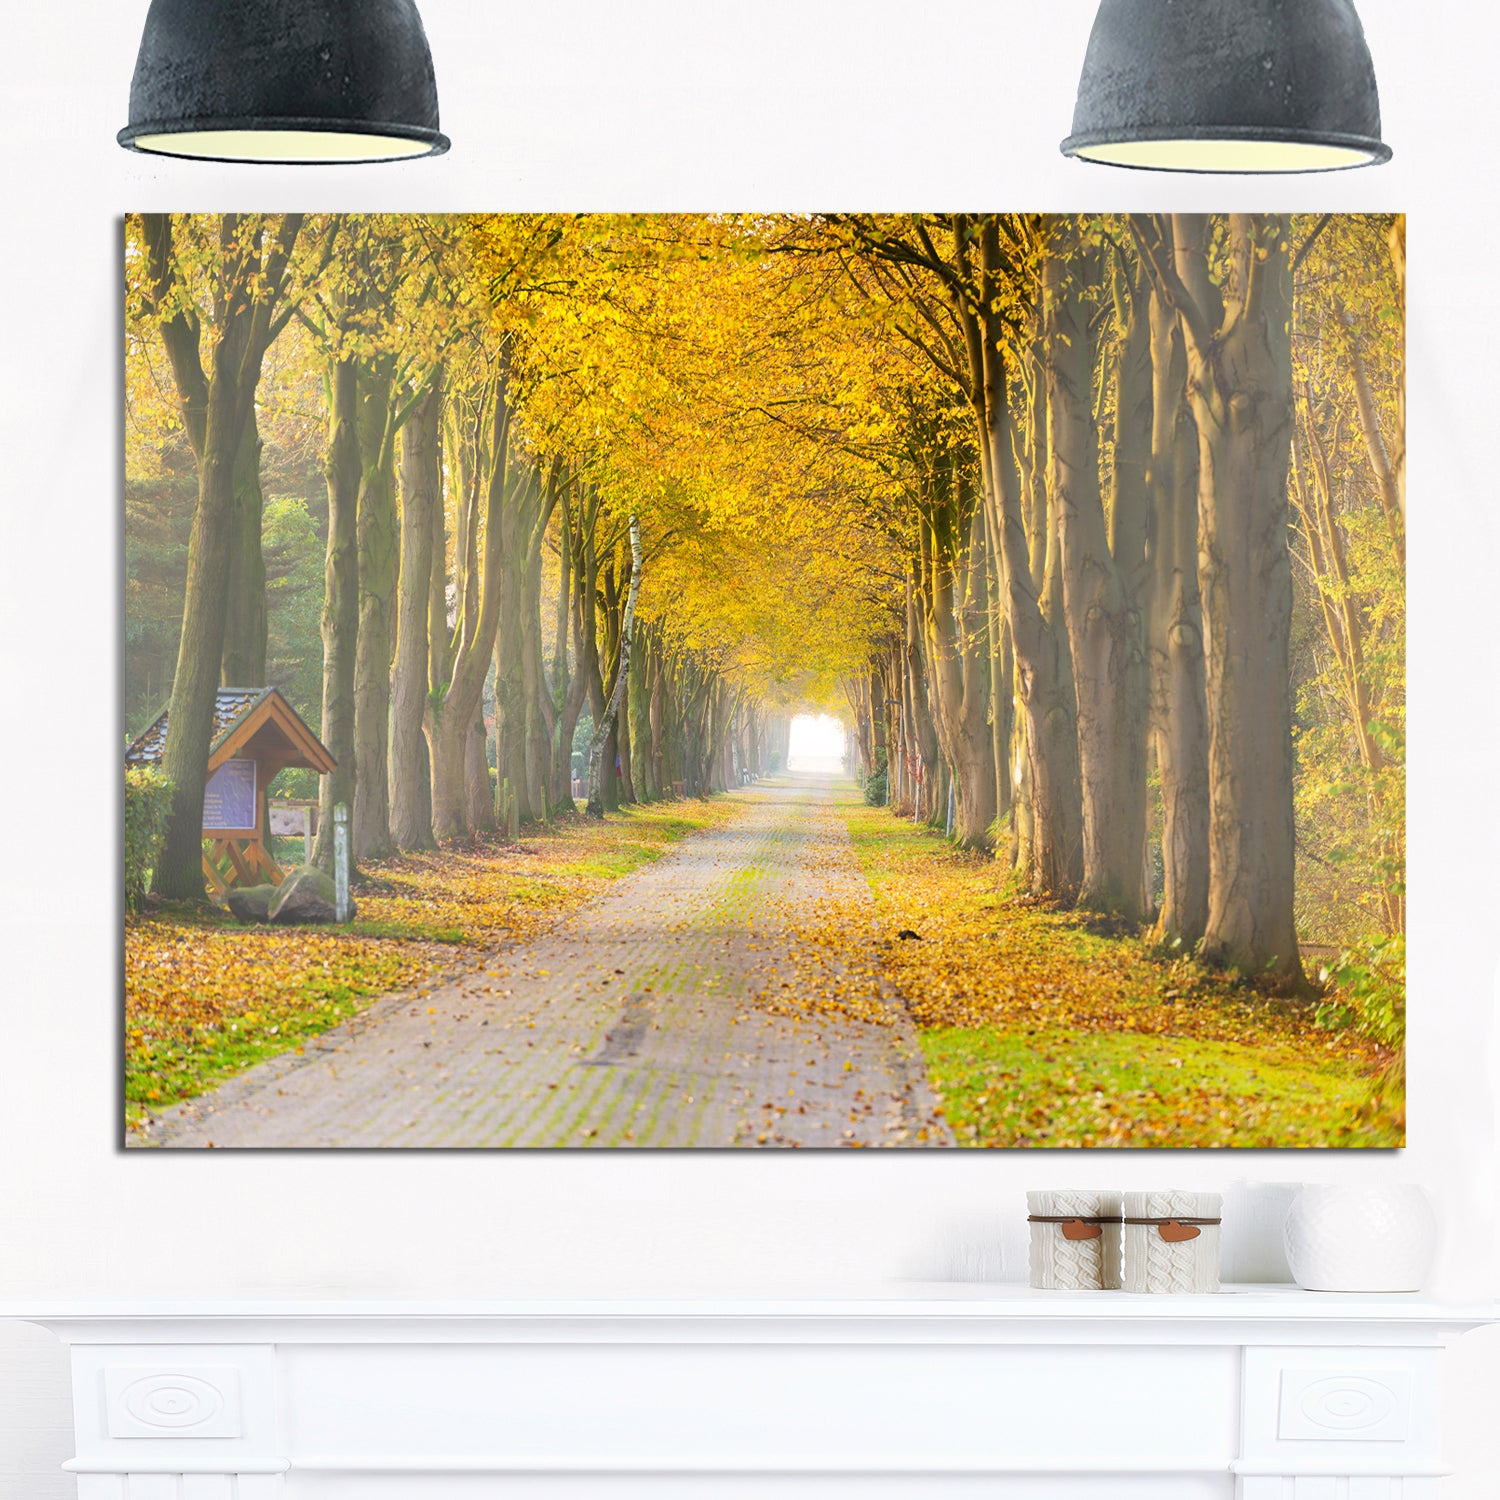 Shop Country Road Below Yellow Trees - Landscape Photo Glossy Metal ...